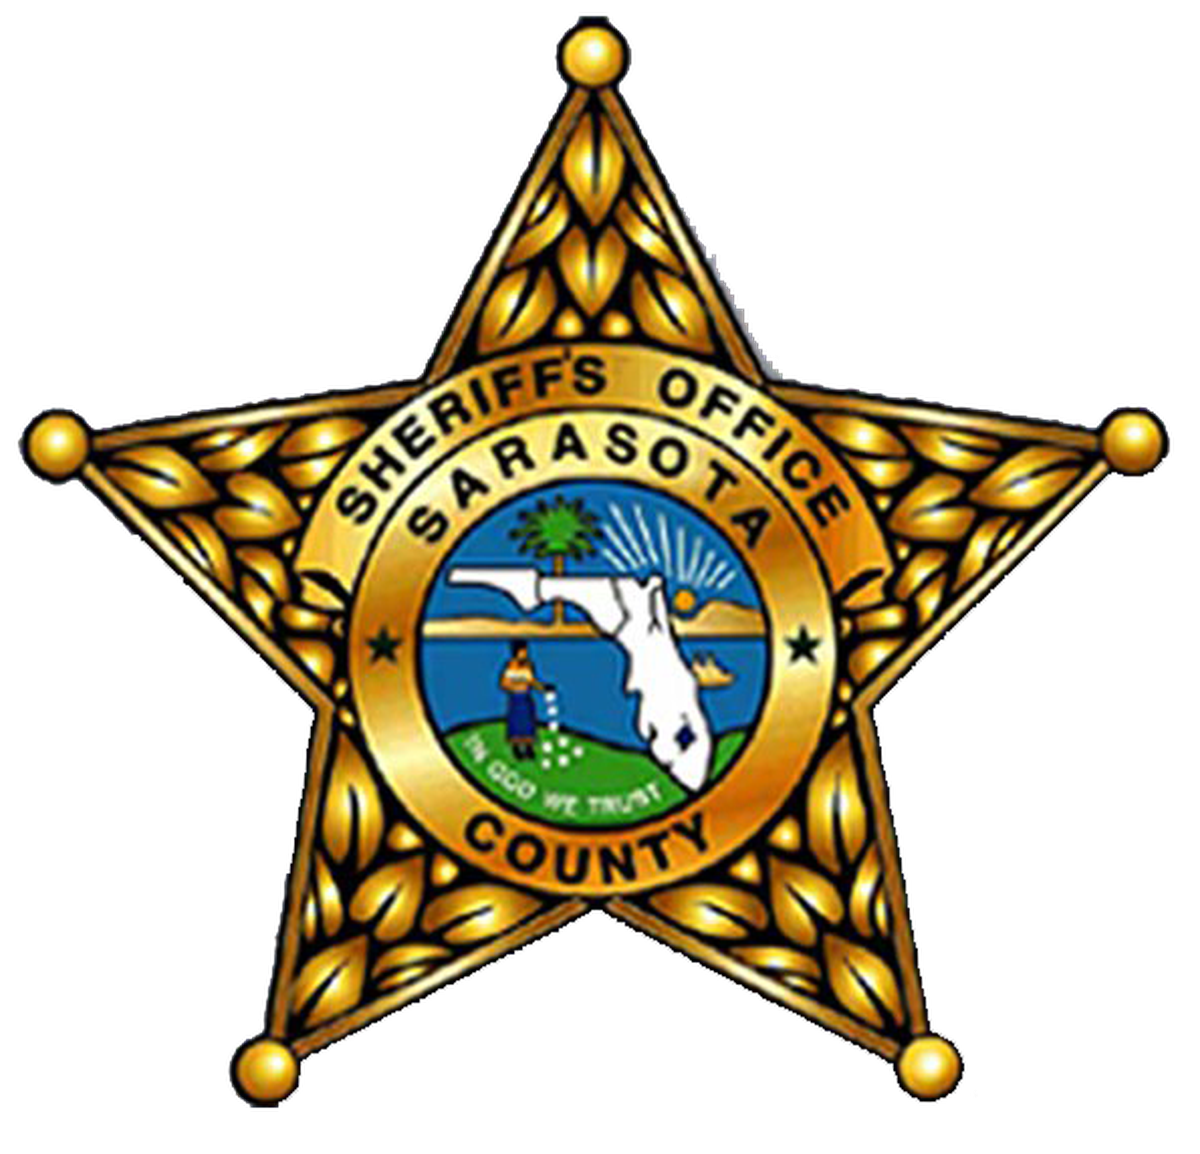 ABC7: Sarasota County Sheriff to close its South County facility.